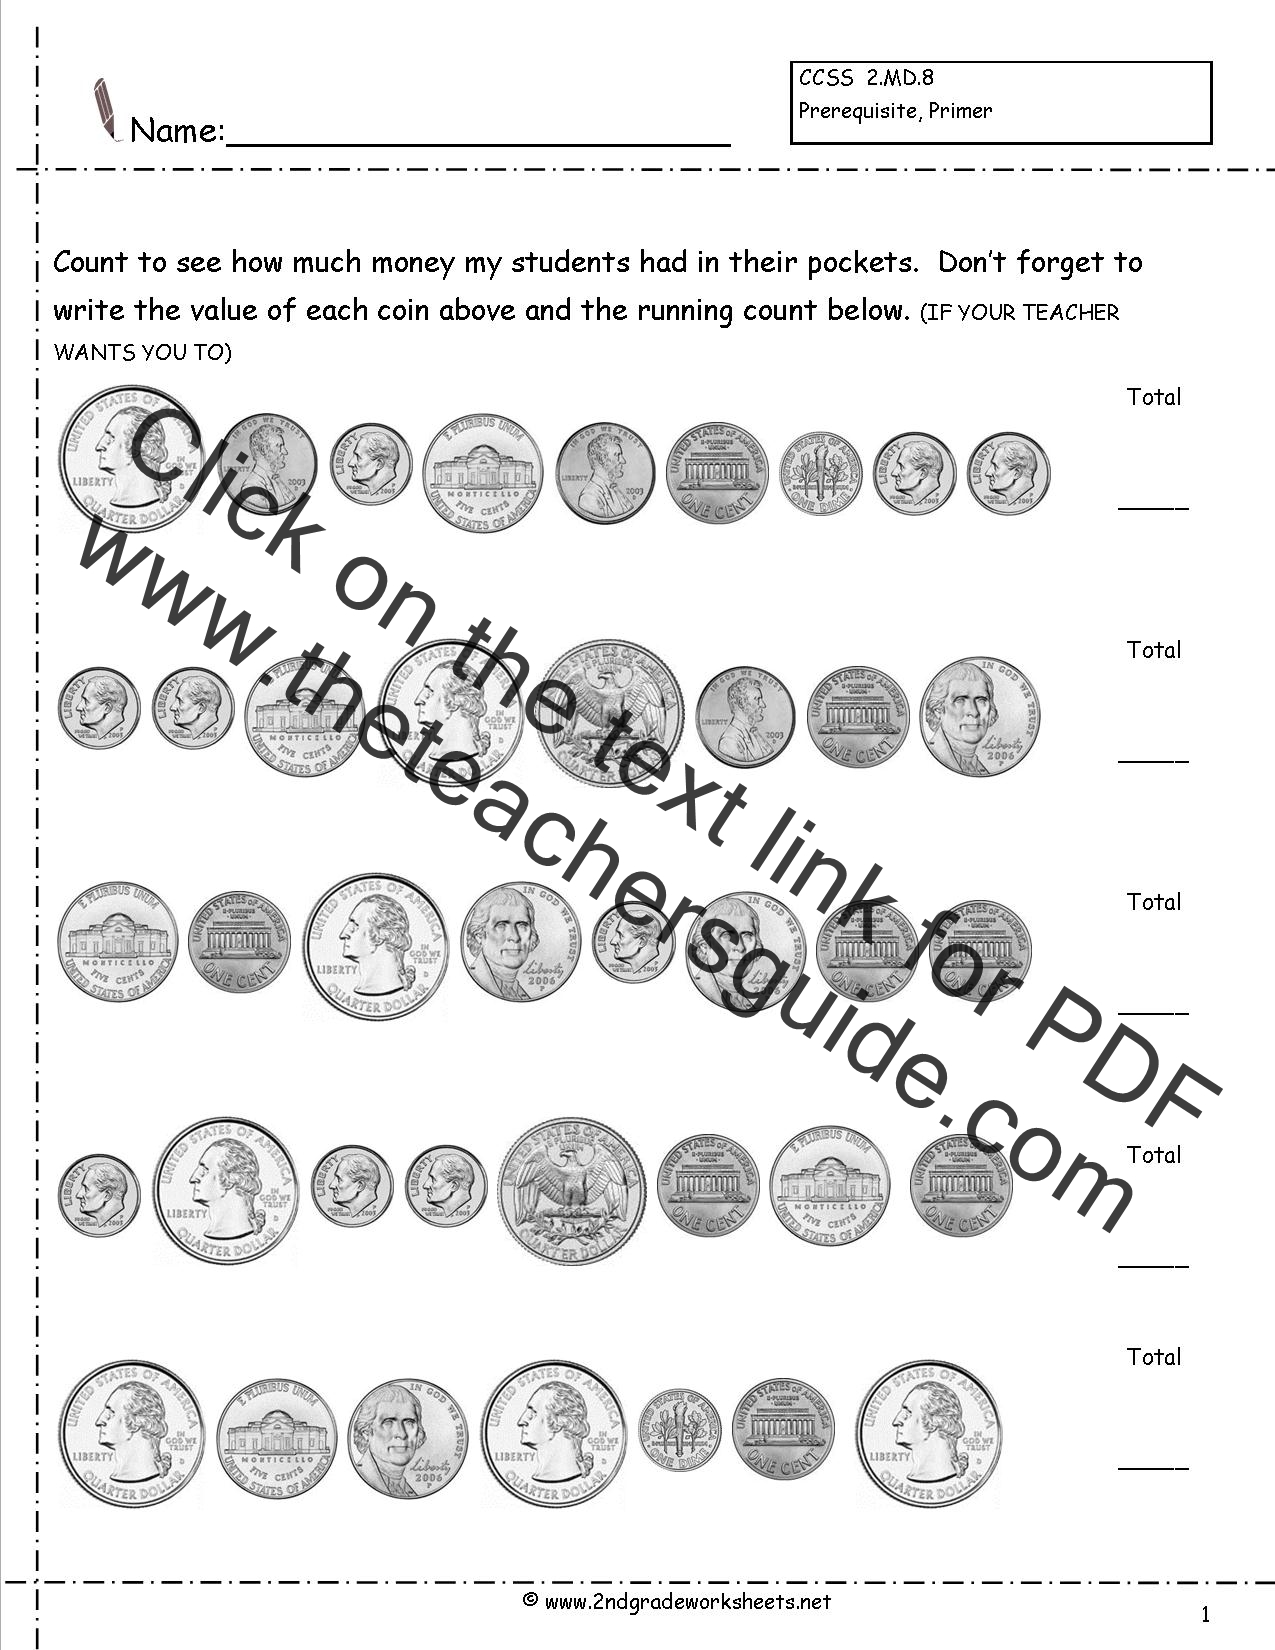 Counting Coins and Money Worksheets and Printouts – Counting Nickels Worksheet